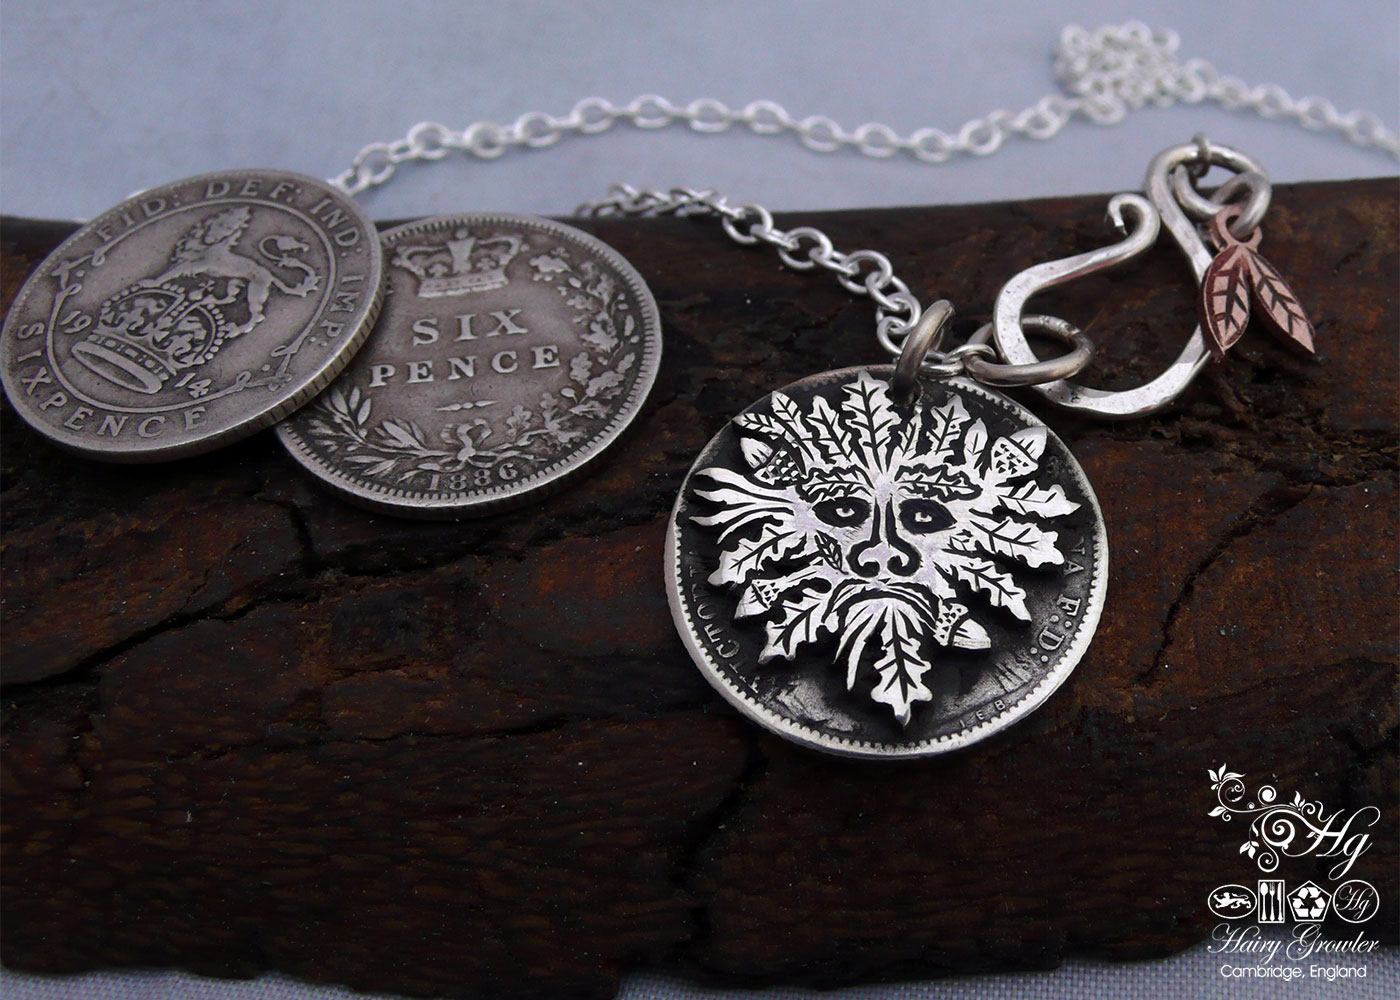 Handcrafted and recycled silver sixpence coin greenman pendant necklace